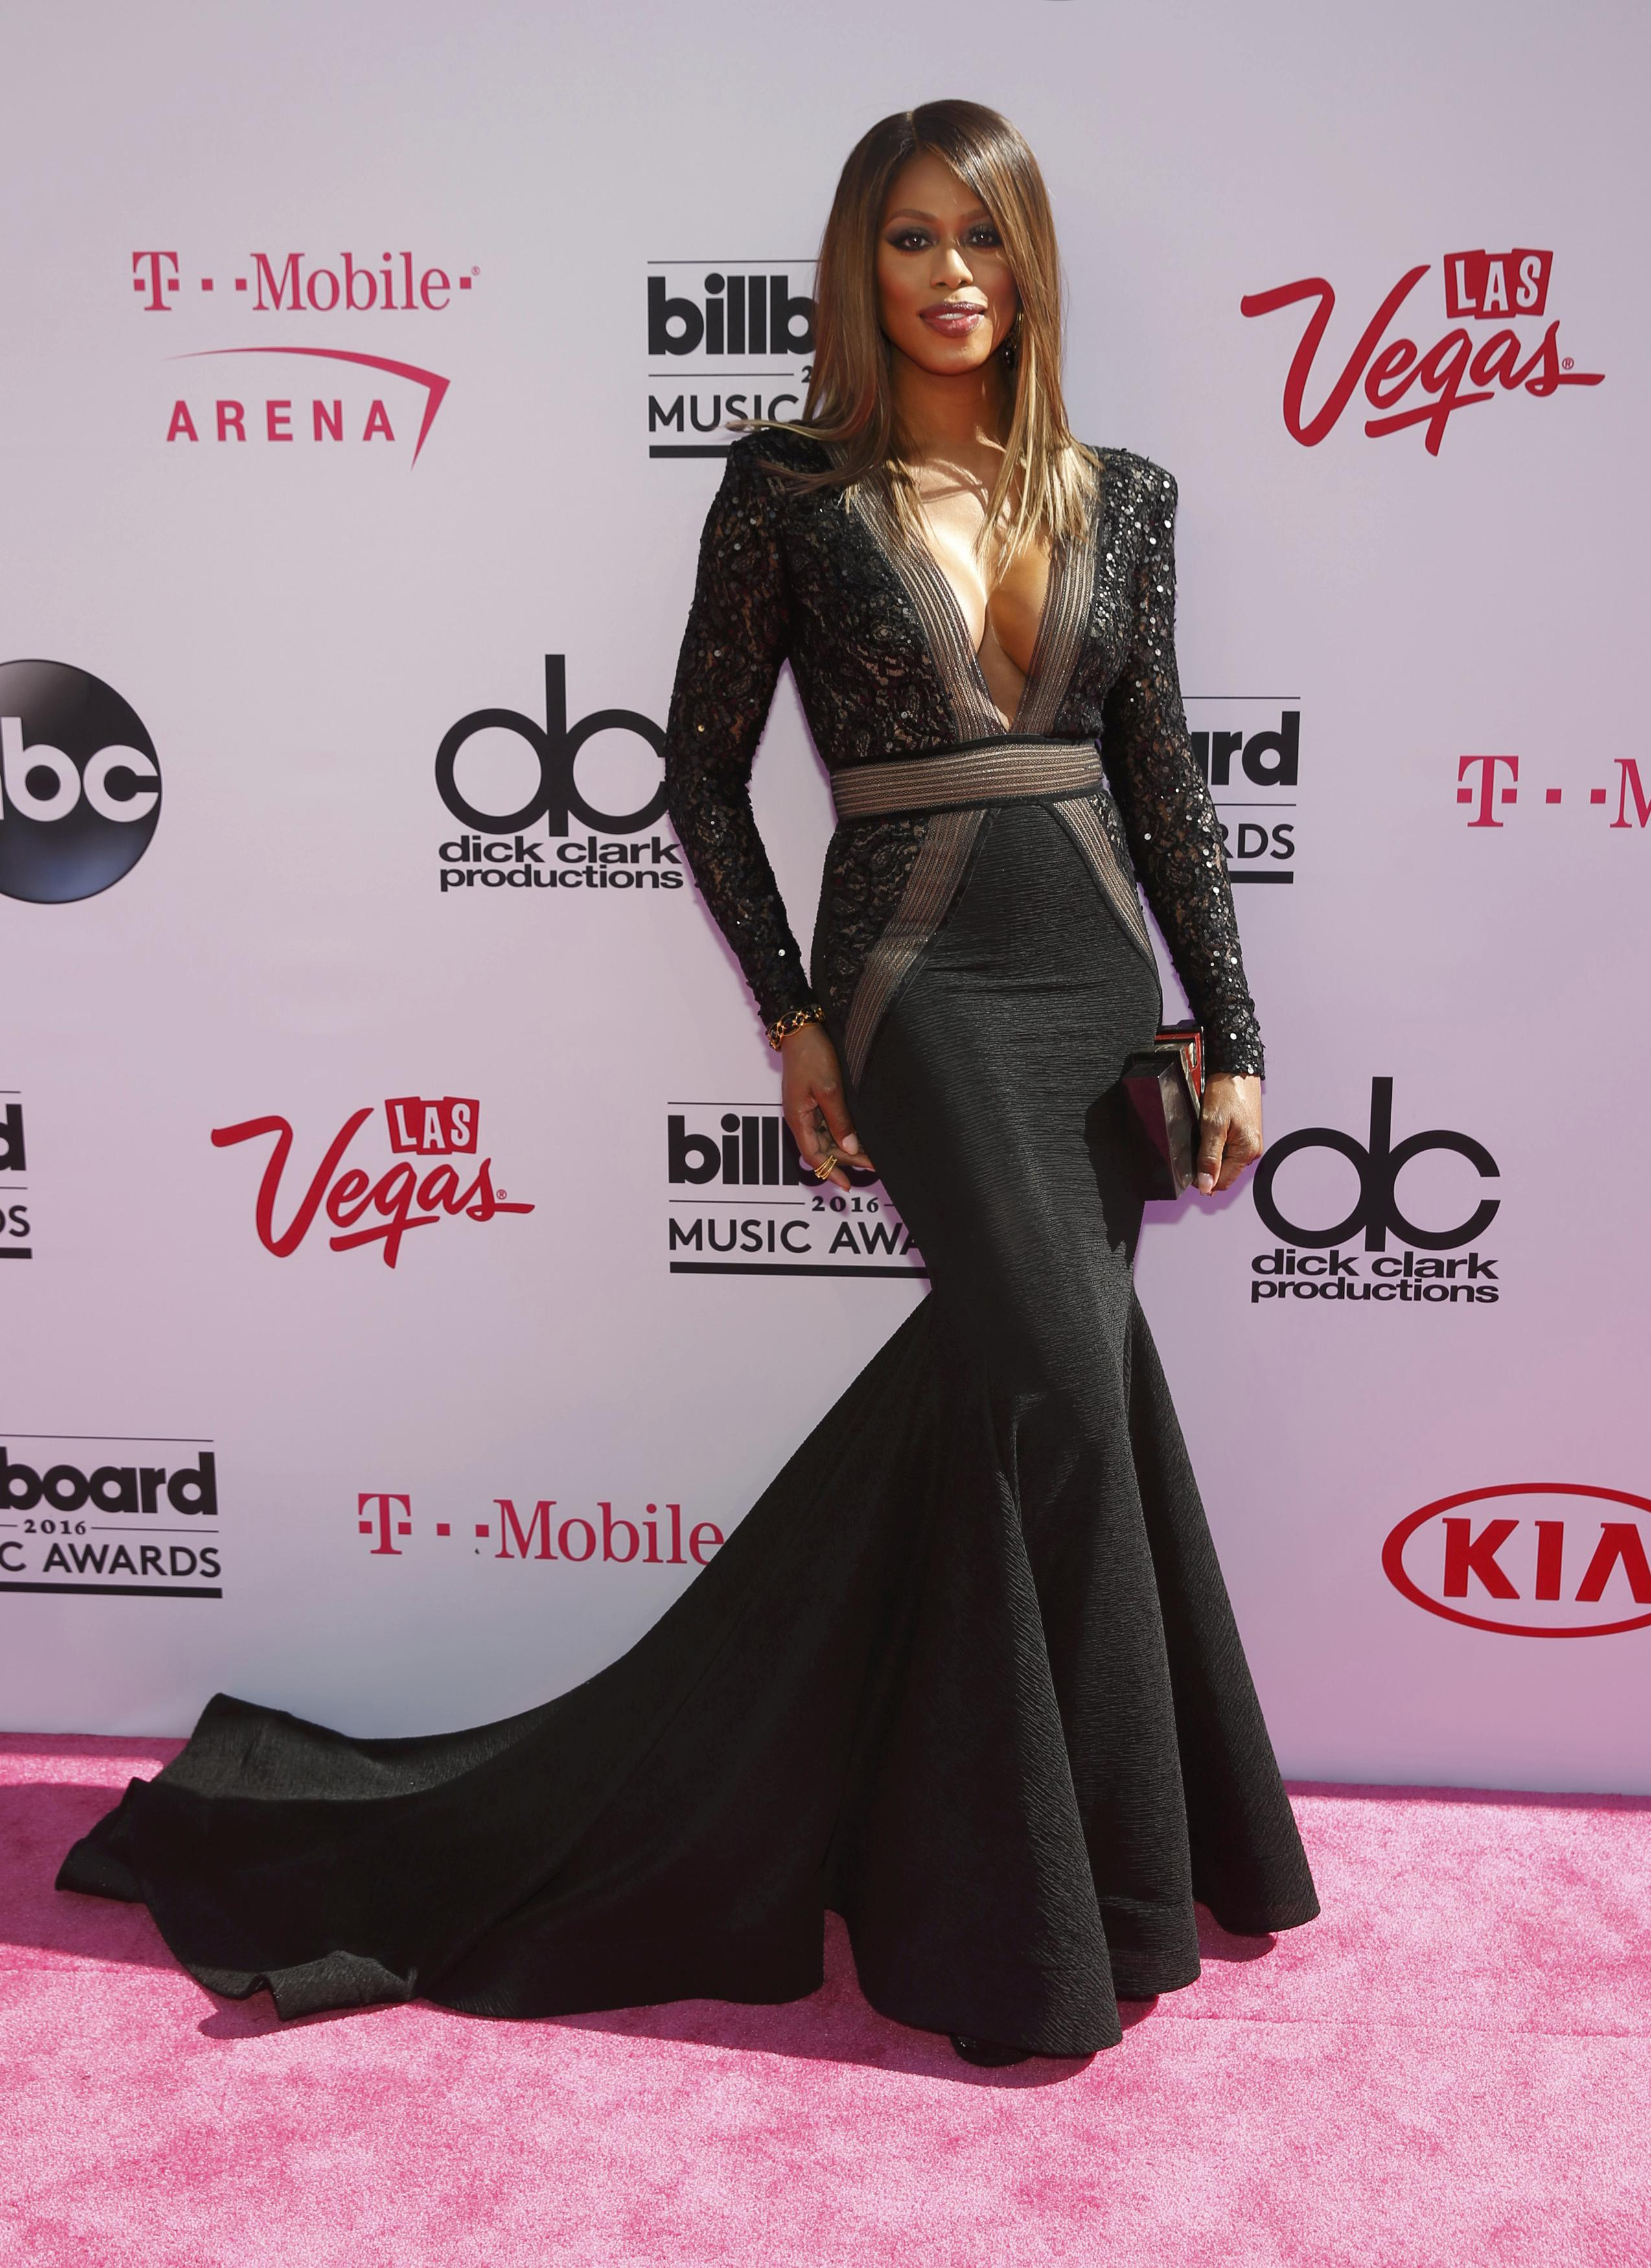 Billboard Music Awards 2016 The Best Hair And Makeup: 2016 Billboard Music Awards Red Carpet